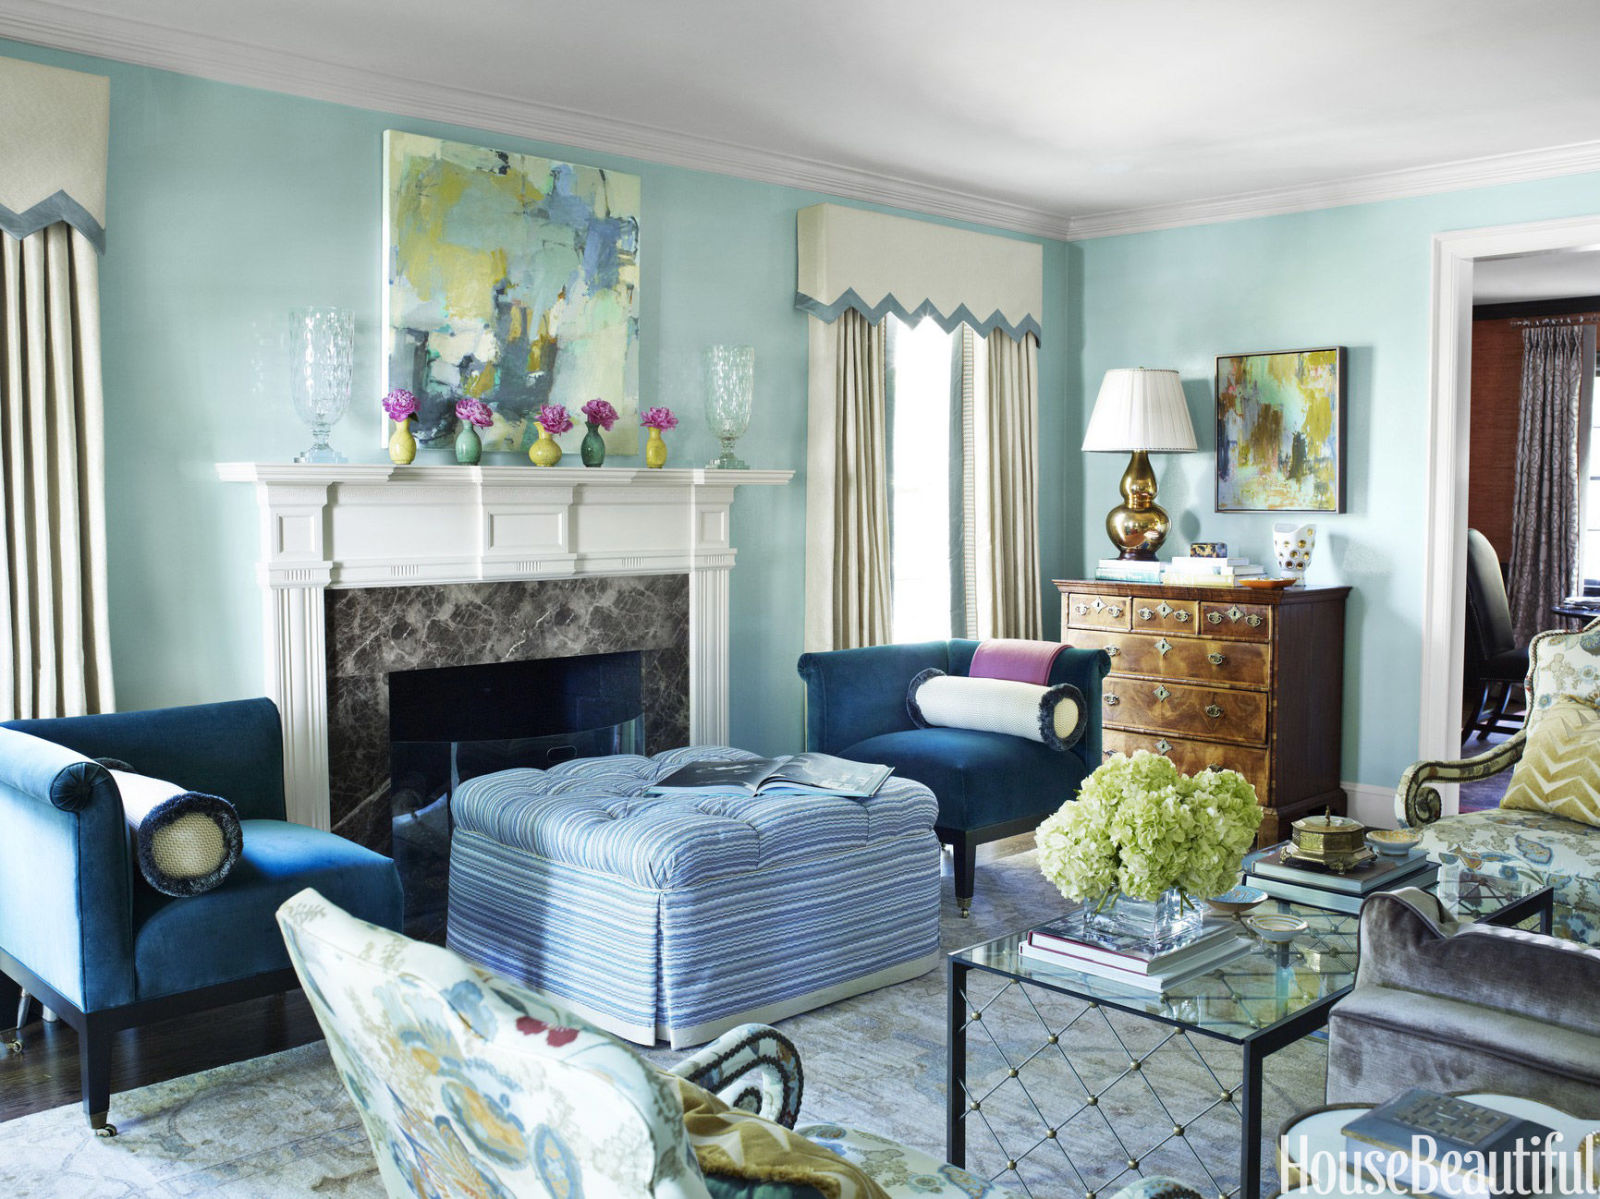 Living room blue paint color ideas - Living Room Blue Paint Color Ideas 2